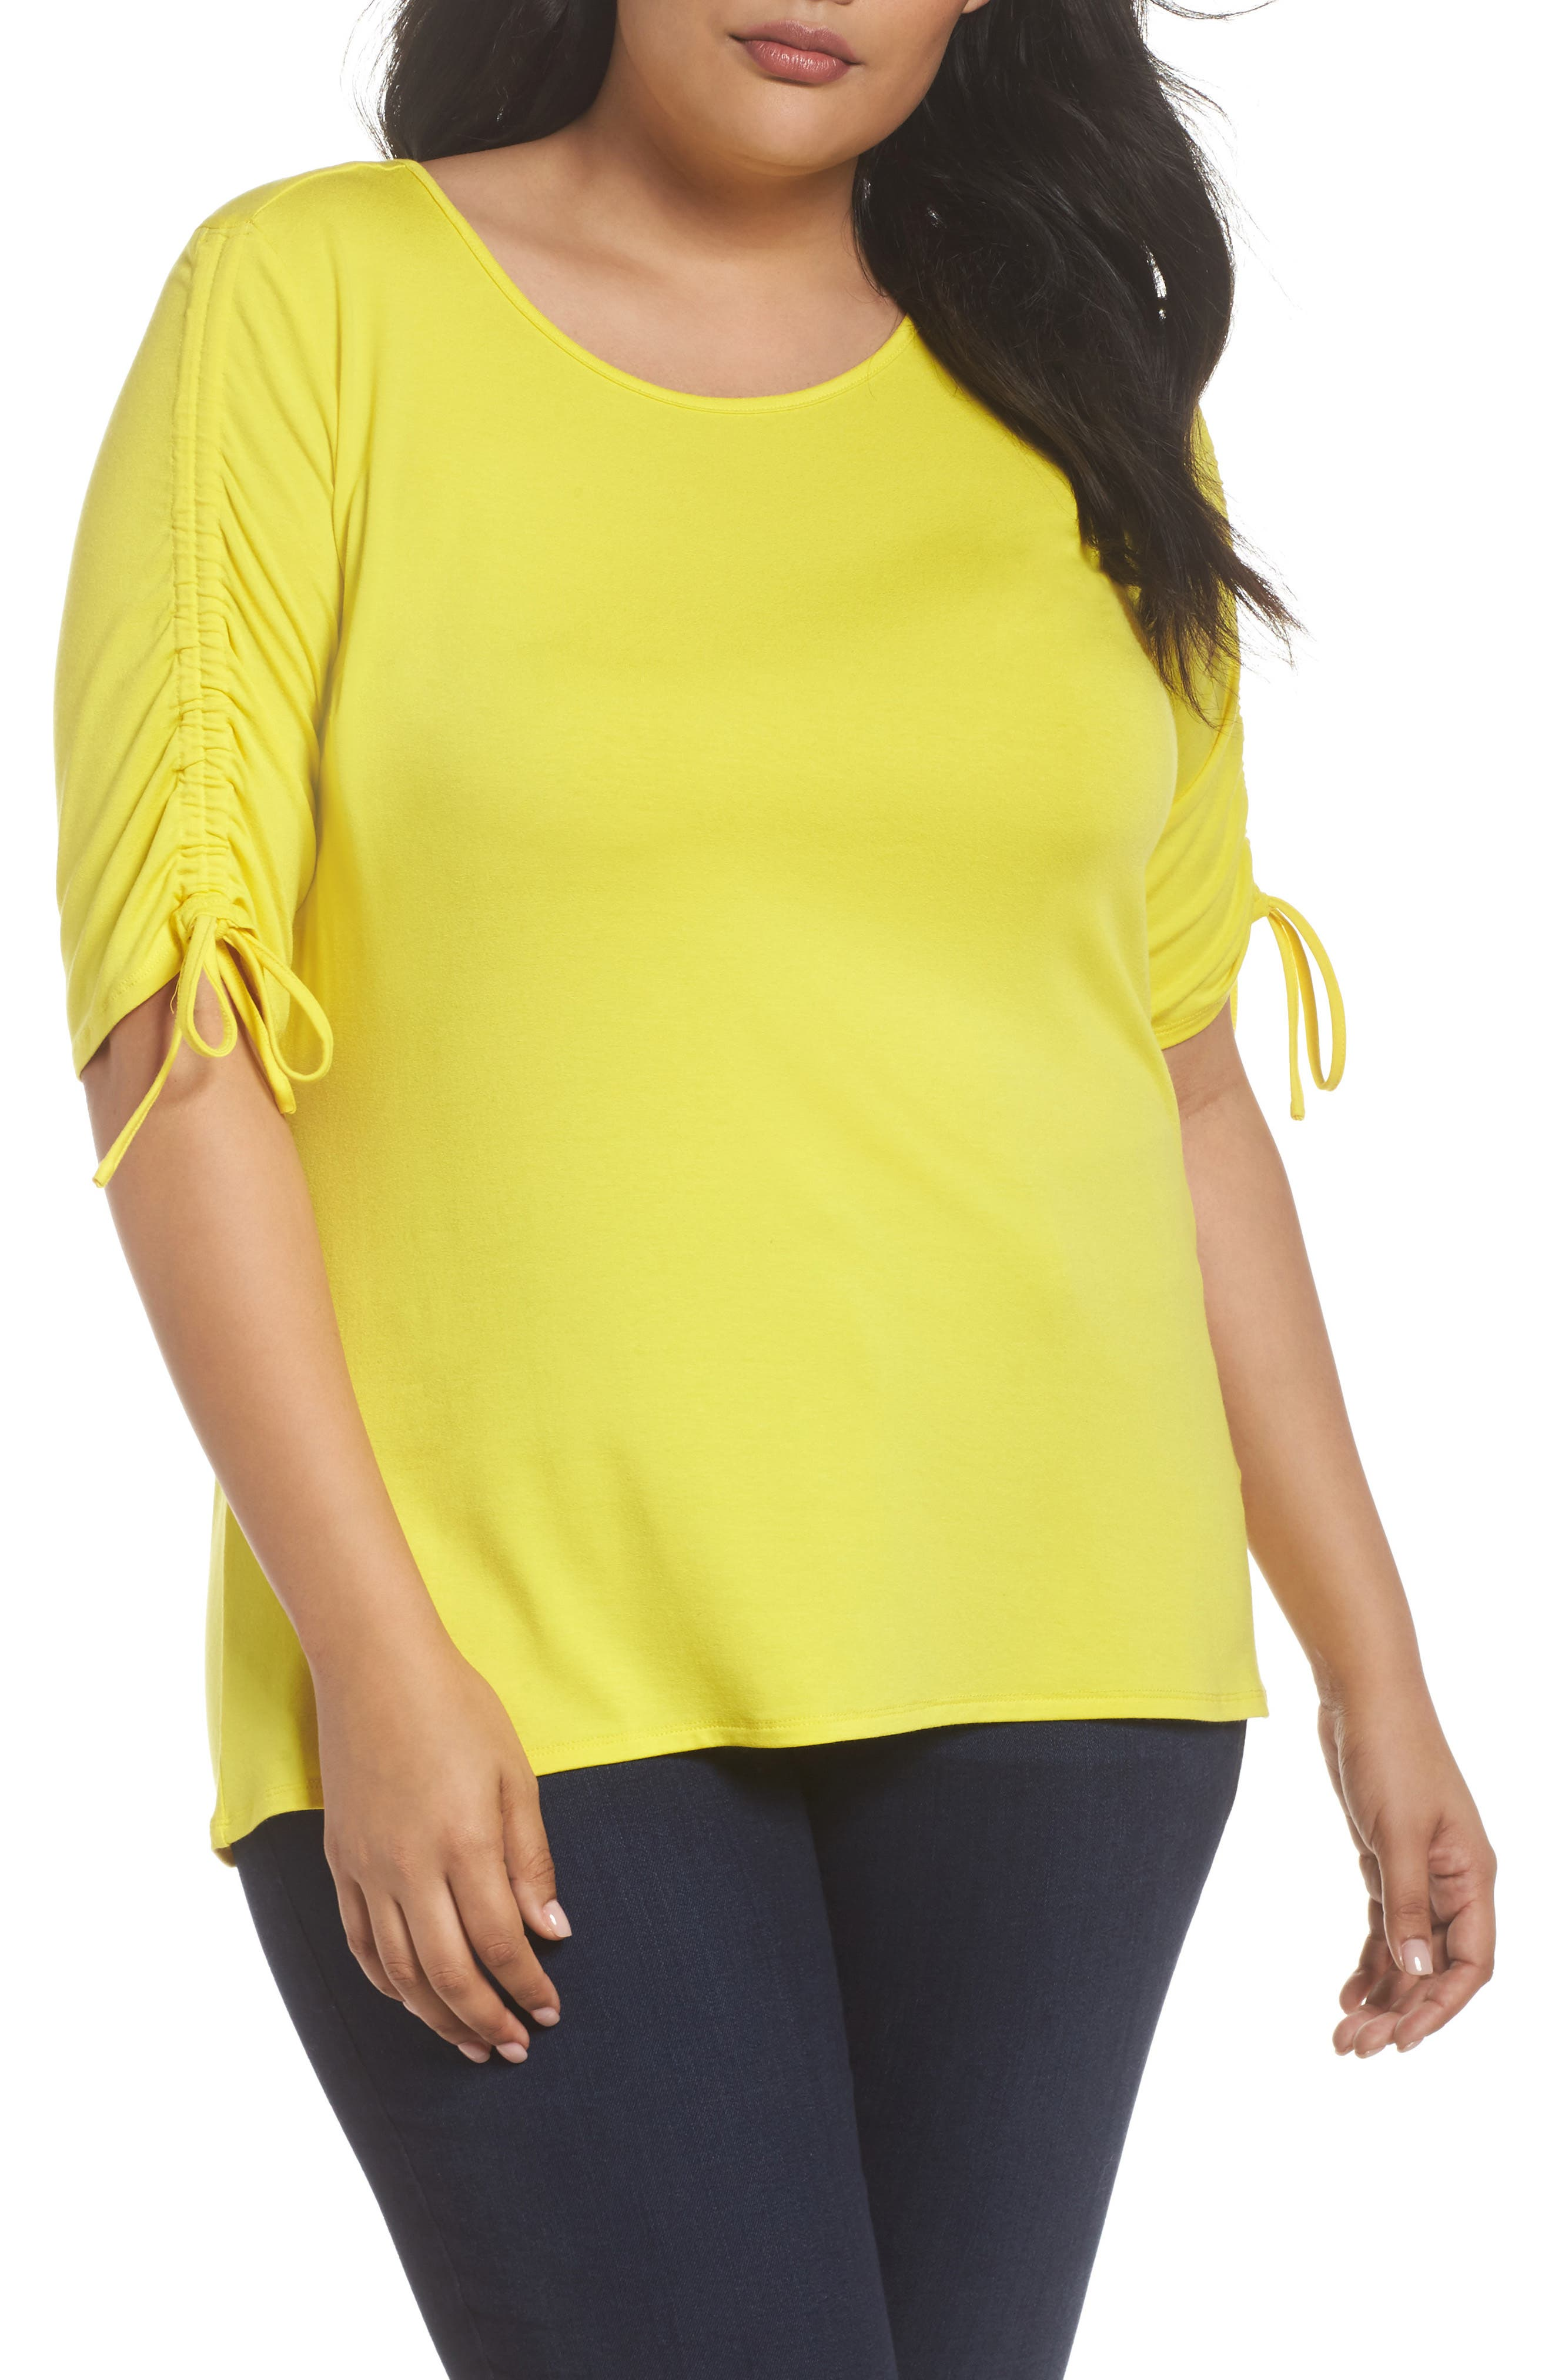 Alternate Image 1 Selected - Vince Camuto Drawstring Sleeve Top (Plus Size)